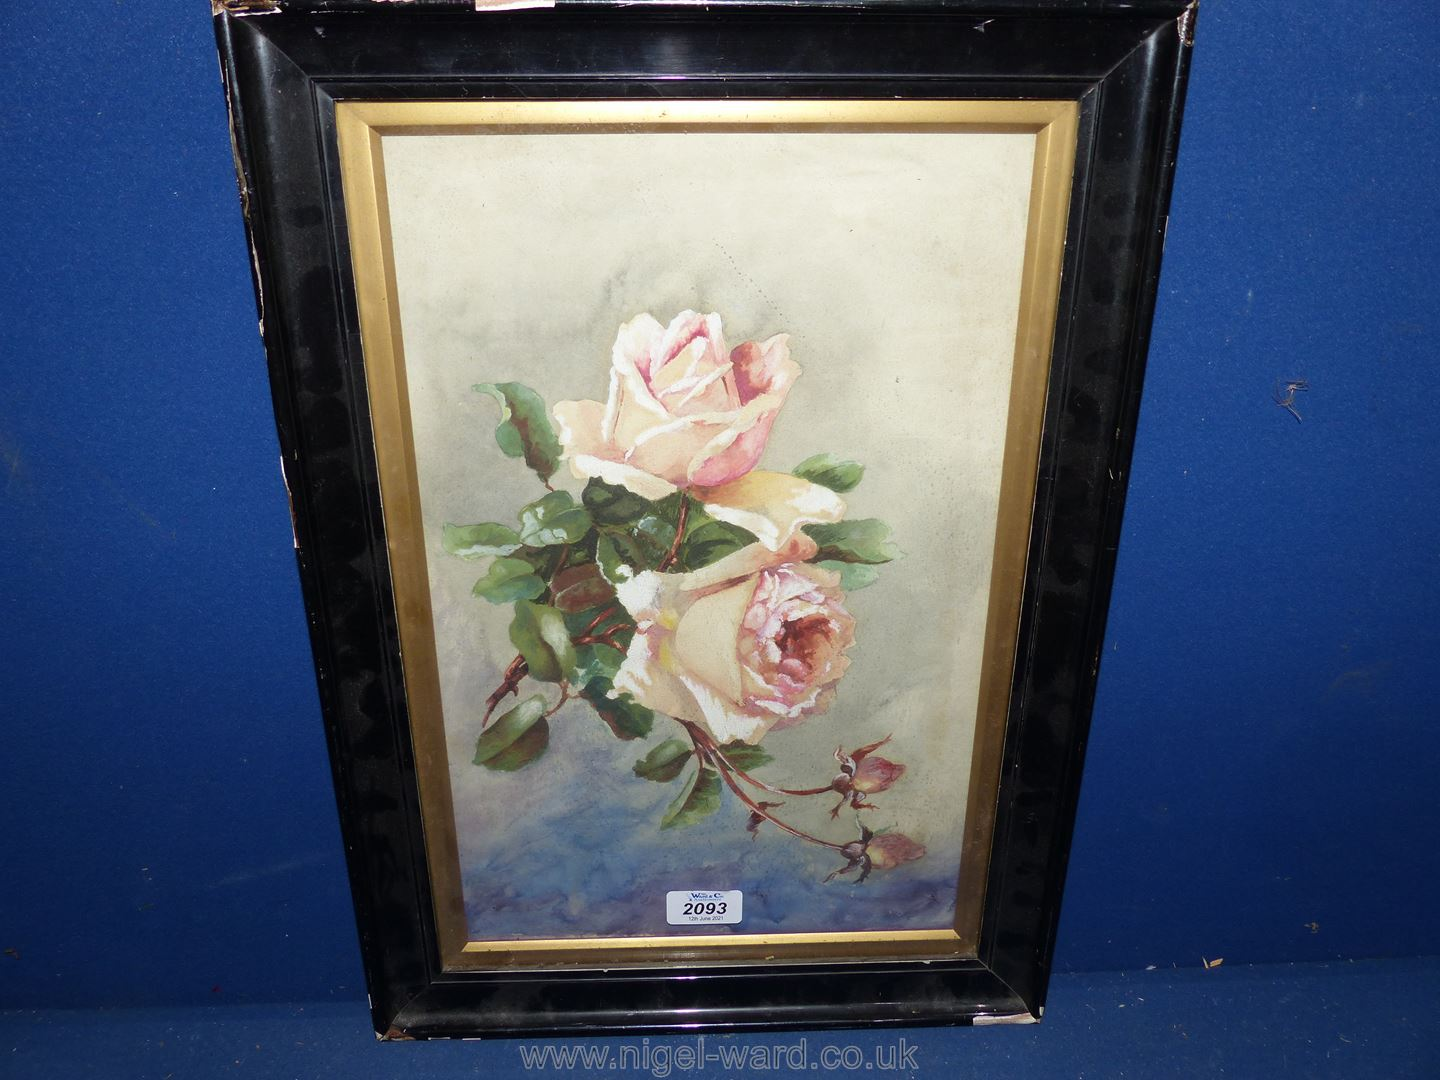 An Edwardian Watercolour of roses.